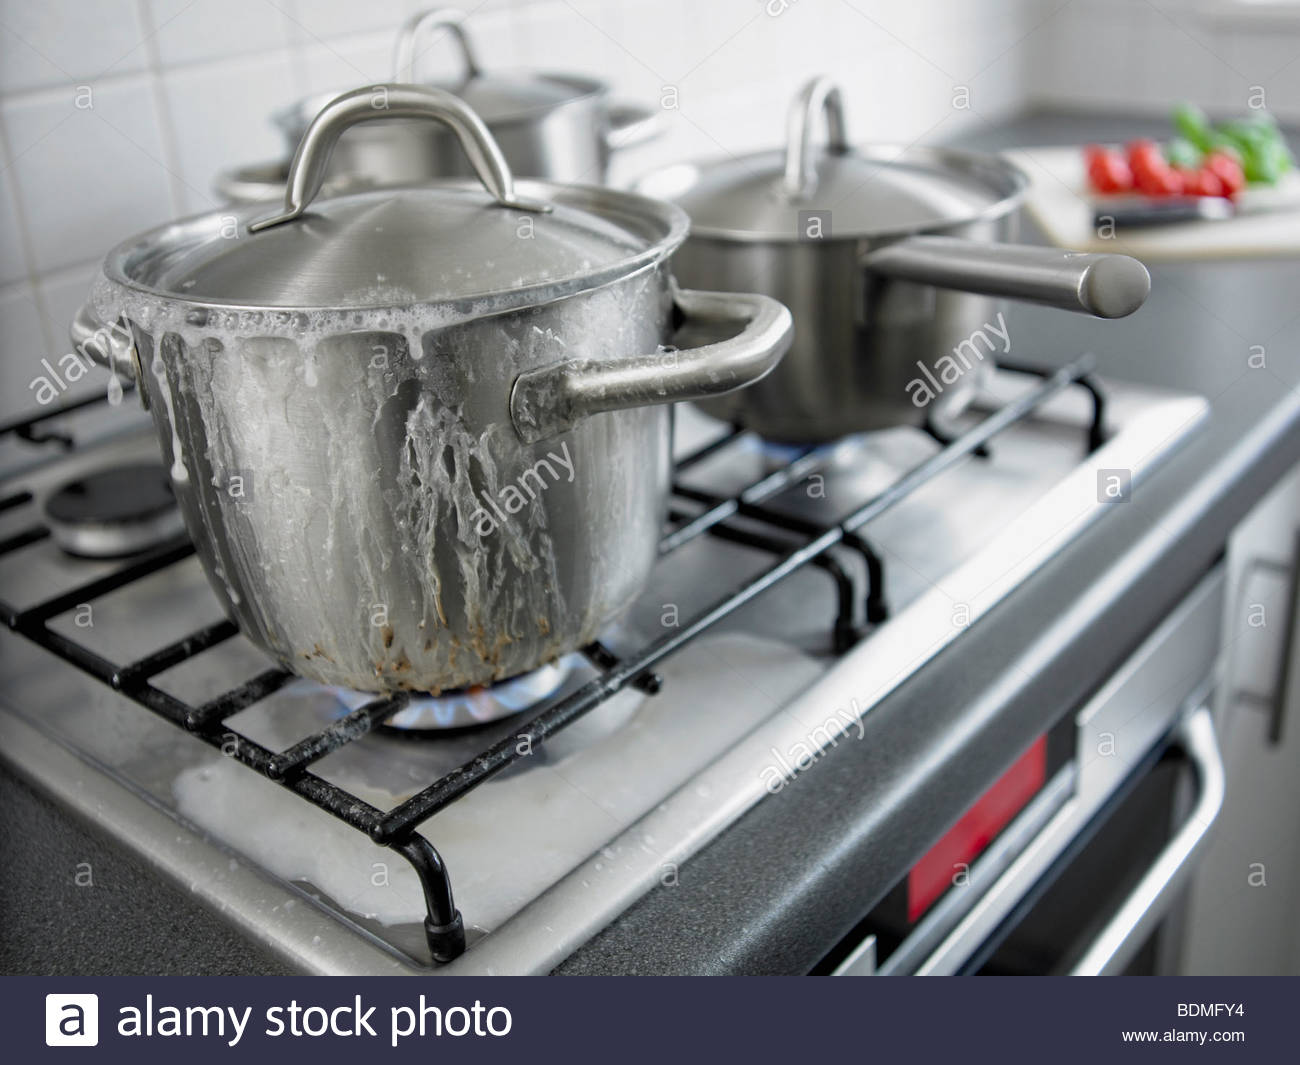 Pot boiling over in kitchen - Stock Image